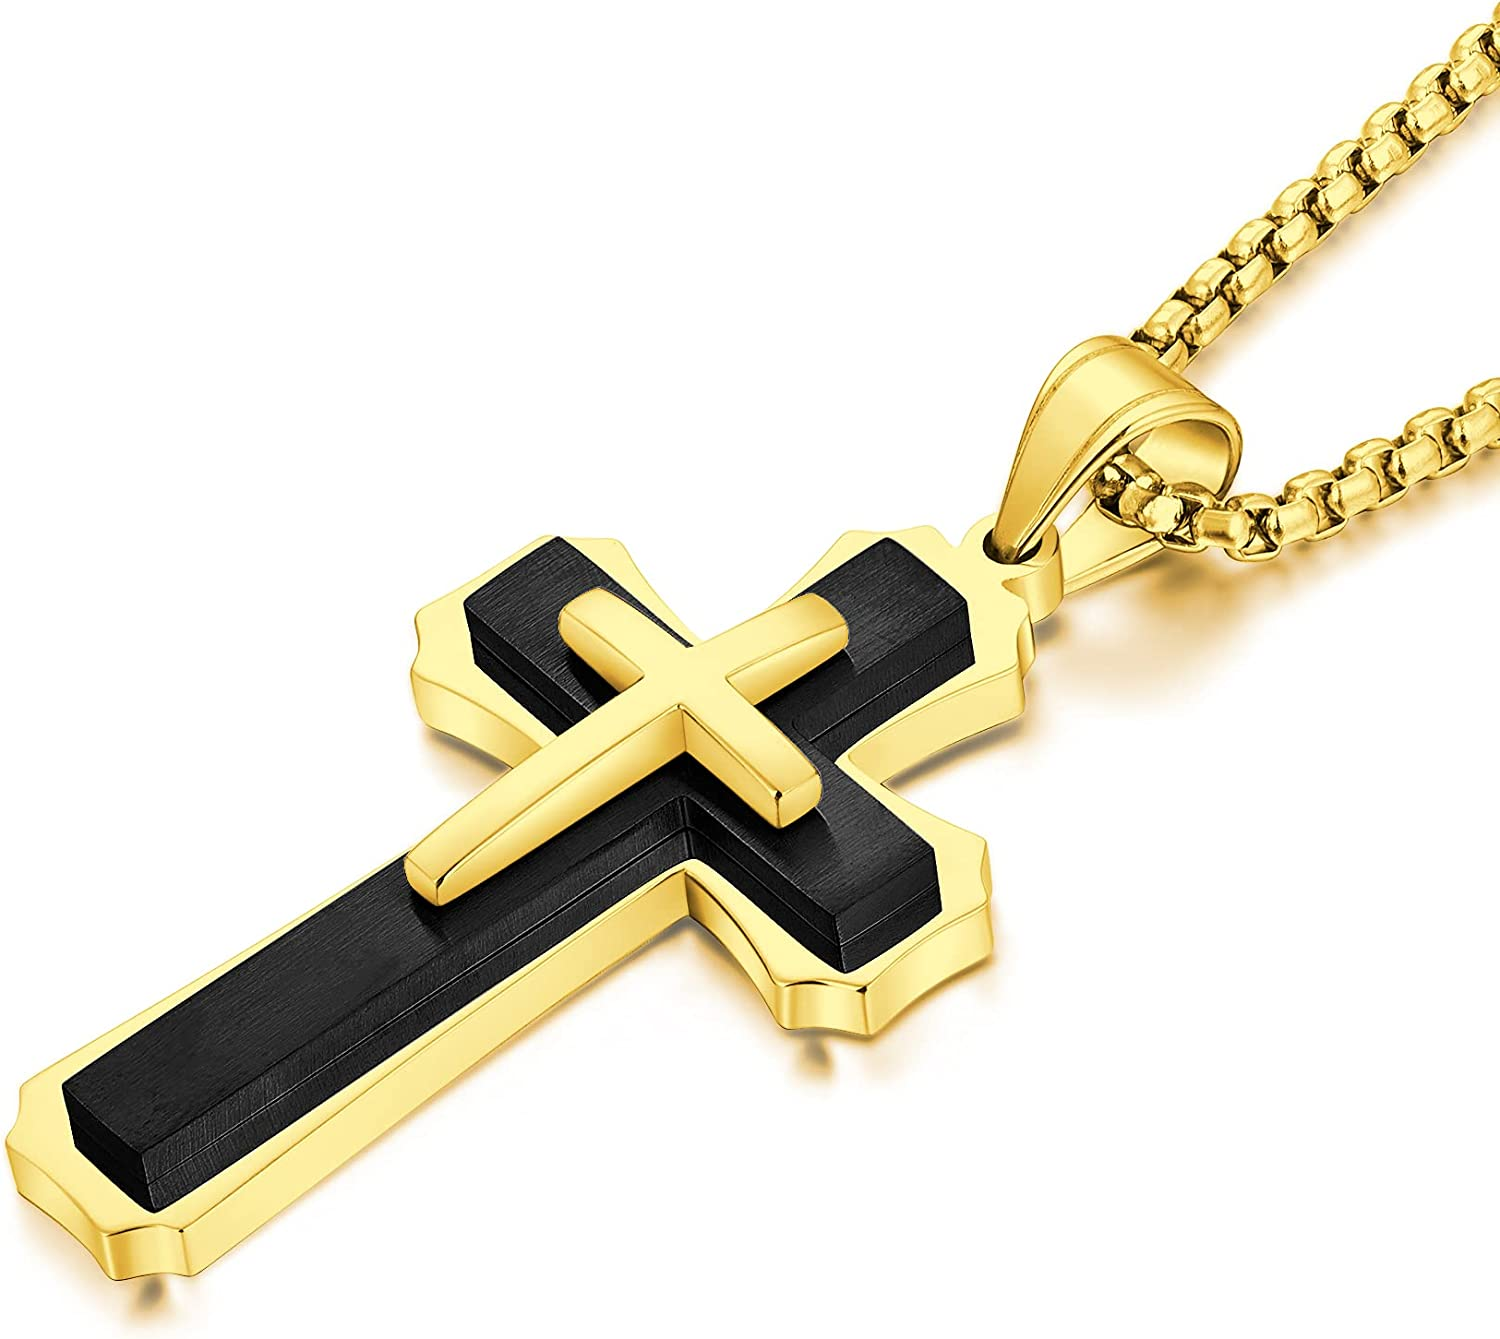 YL Cross Necklace for Men Stainless Steel Jesus Christ Crucifix Pendant Lord's Prayer Jewelry